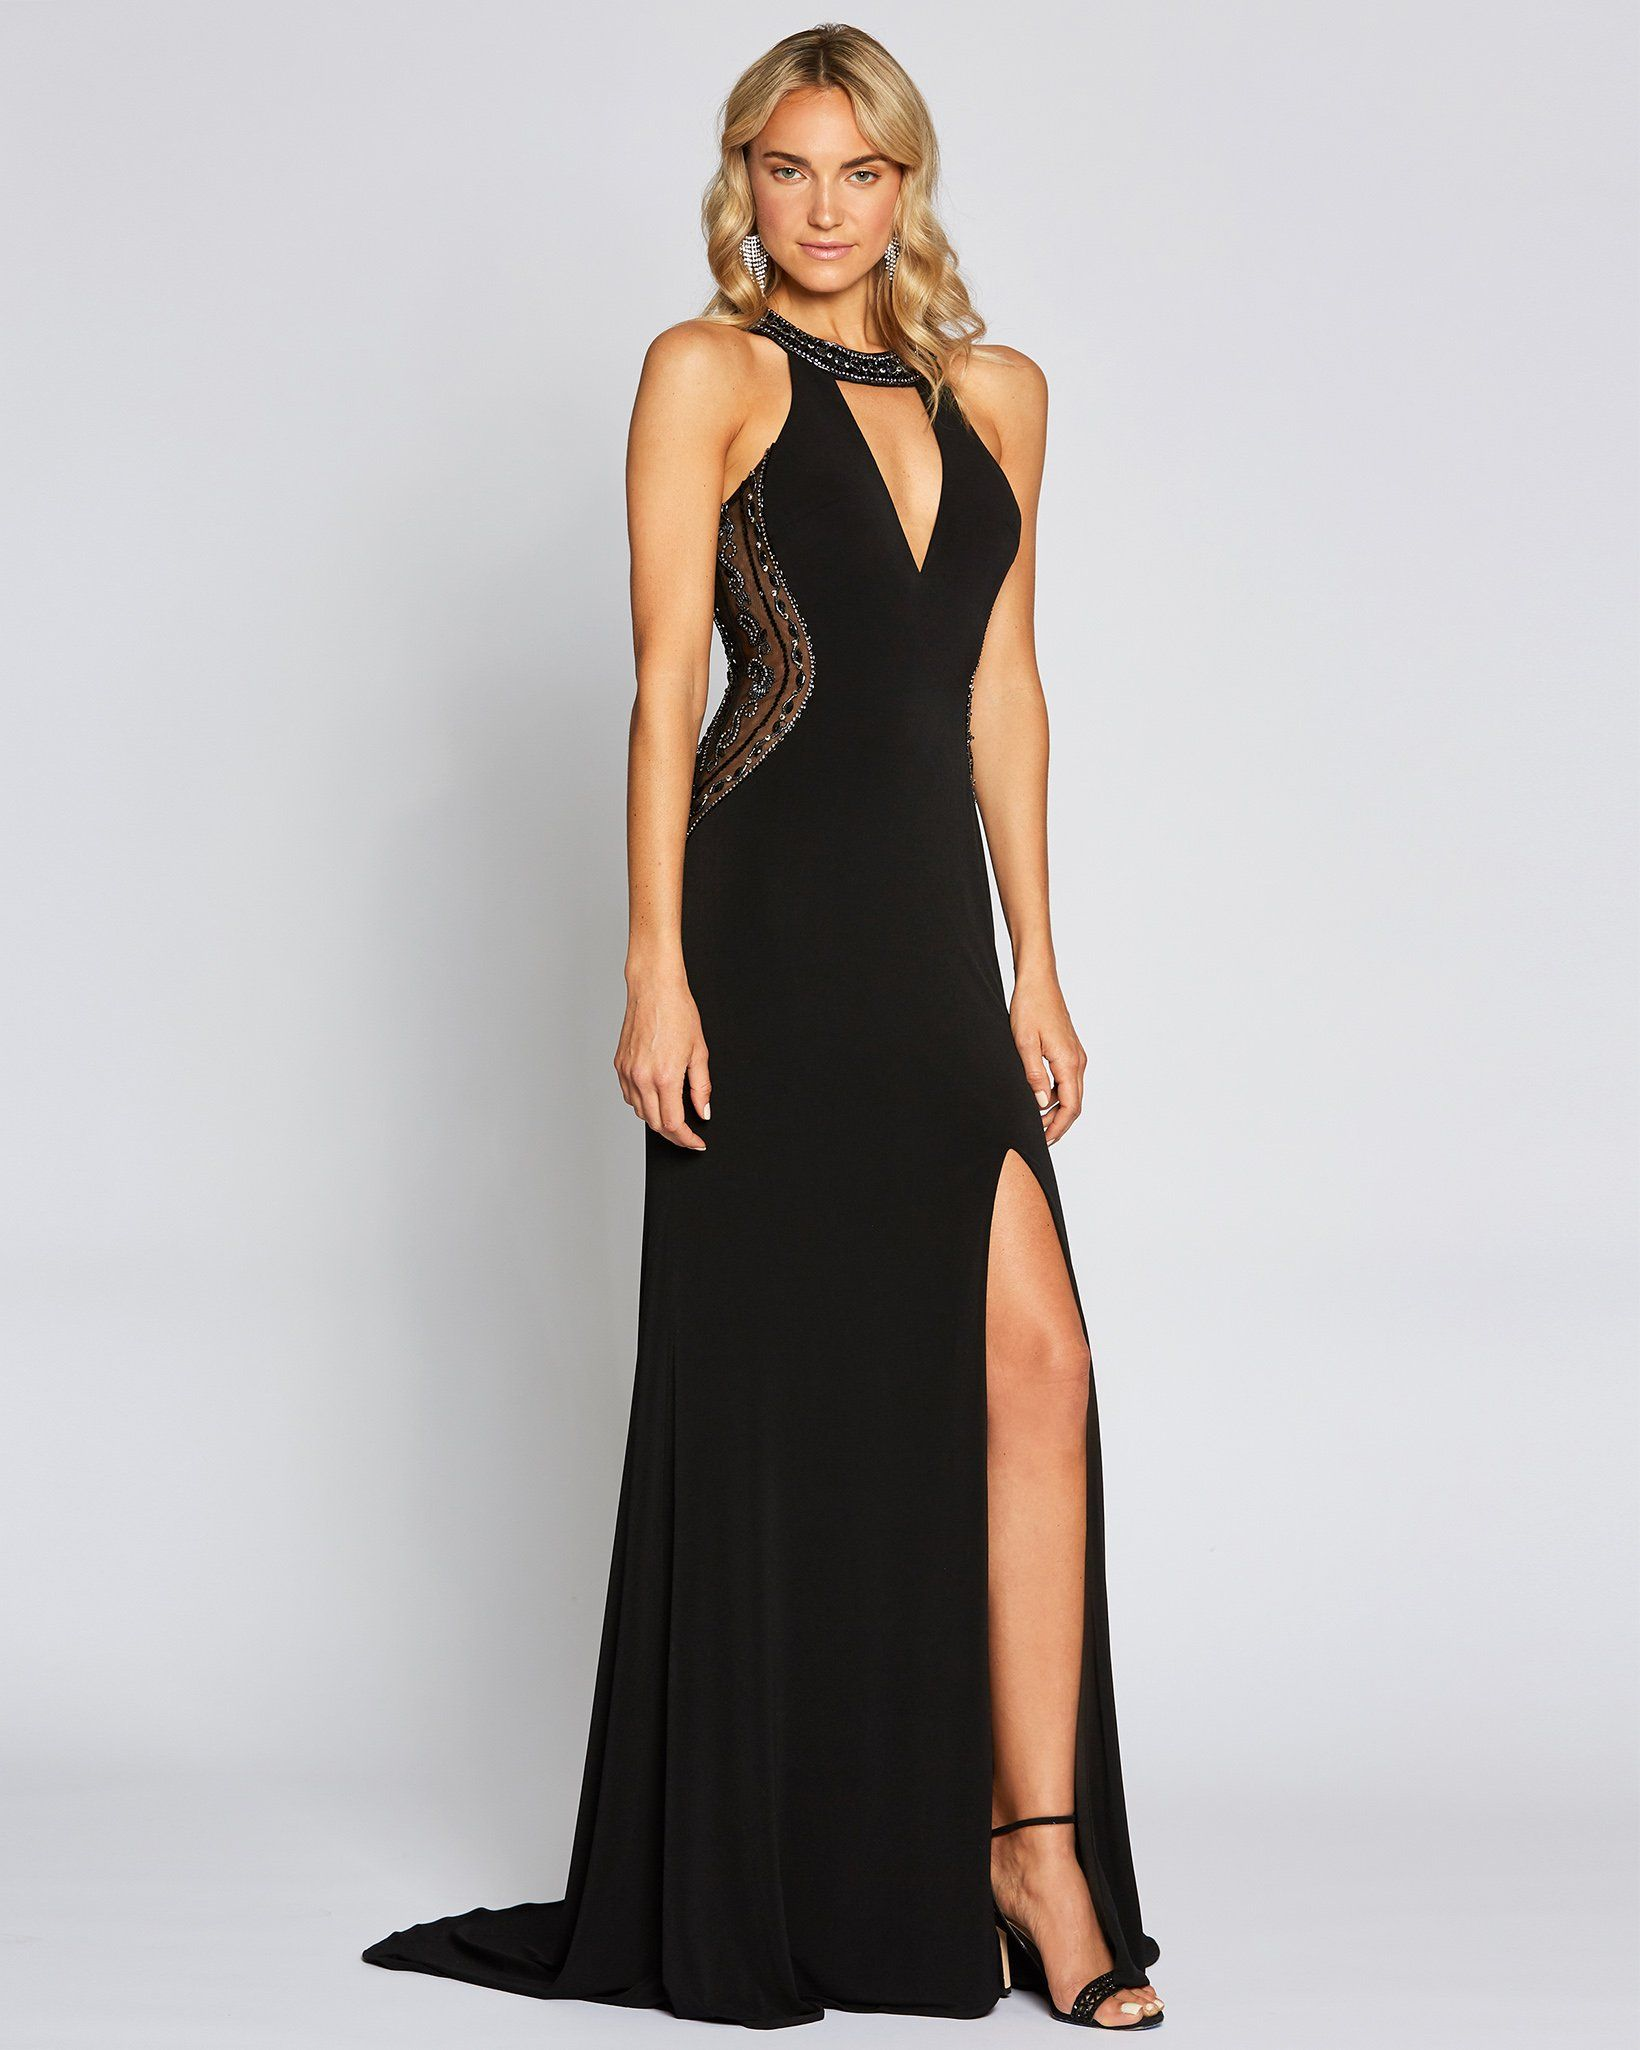 Black Sexy Slit Dress